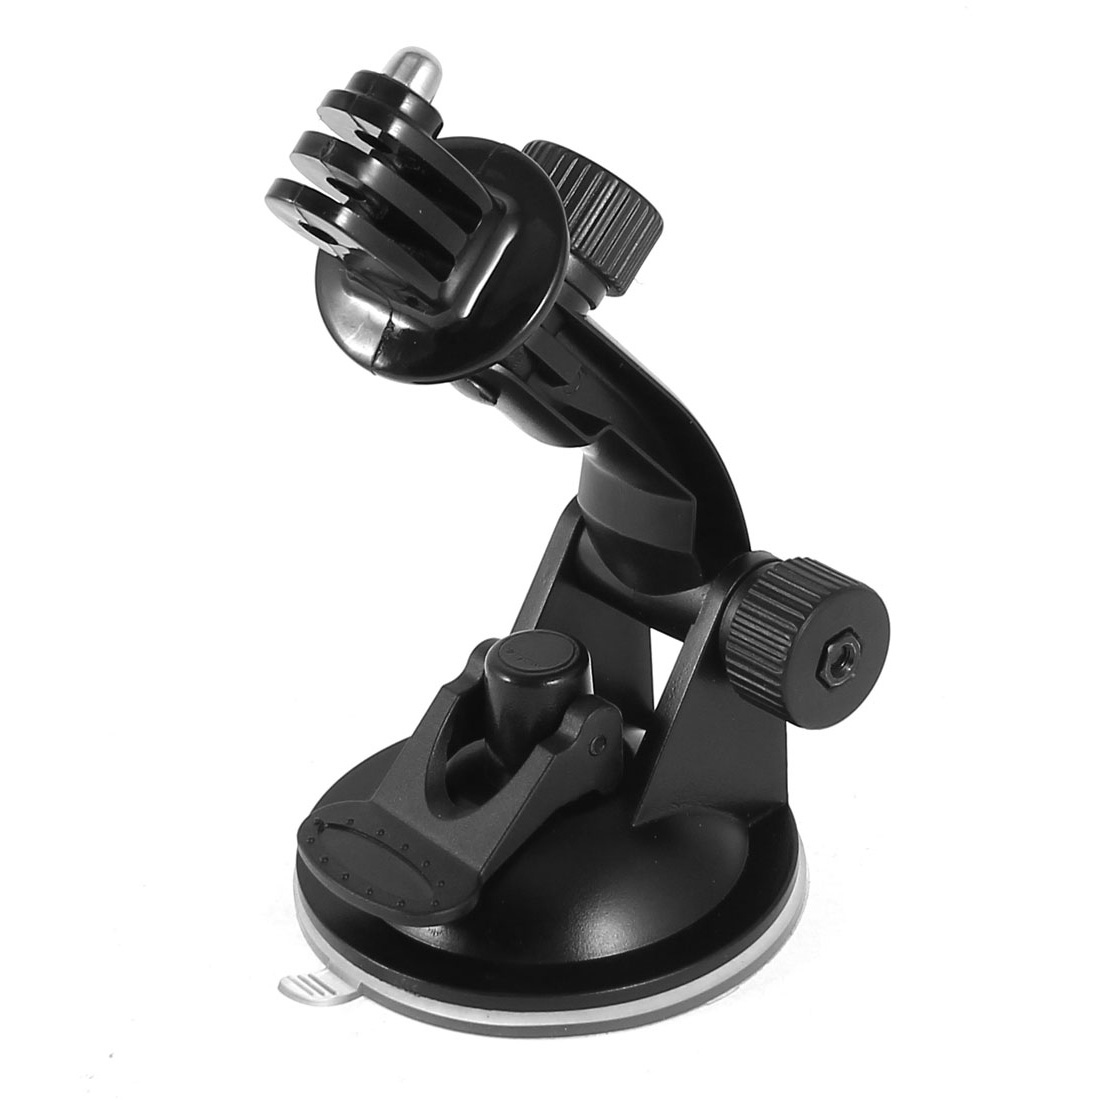 Suction Cup Mounting Stand + Tripod Mount Adapter Black for GoPro HD HERO3/2/1